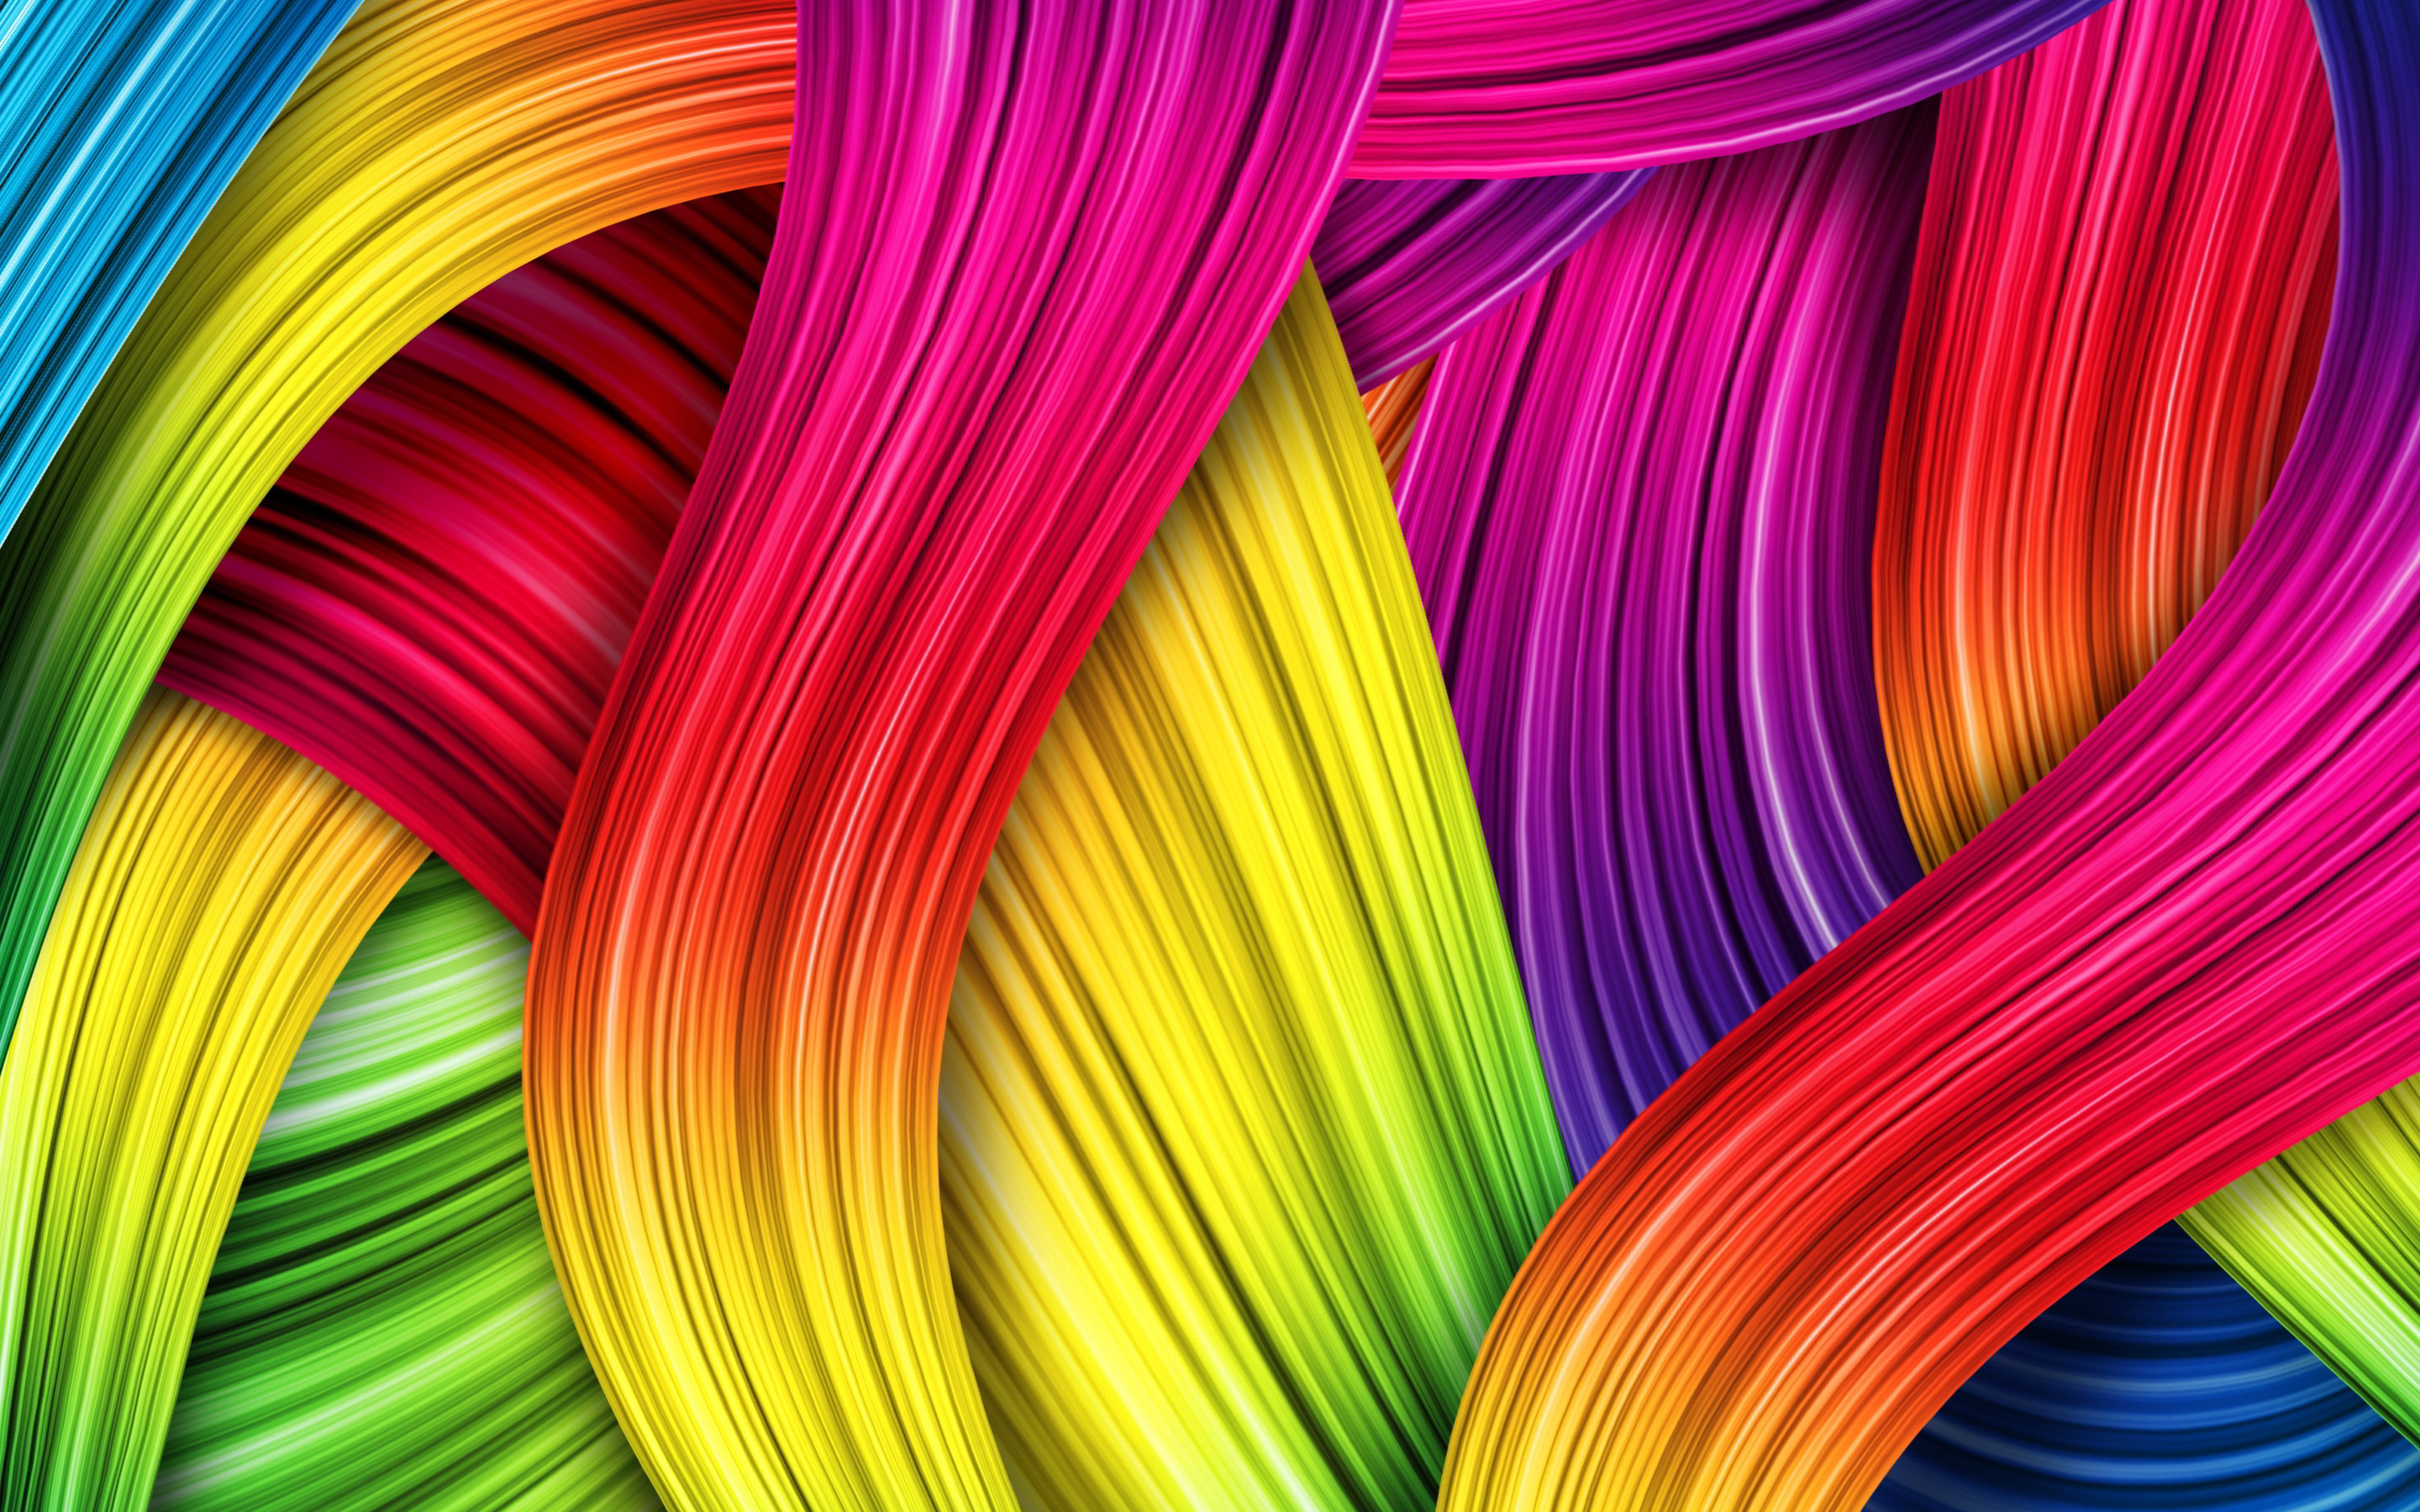 Abstract colorful lines art